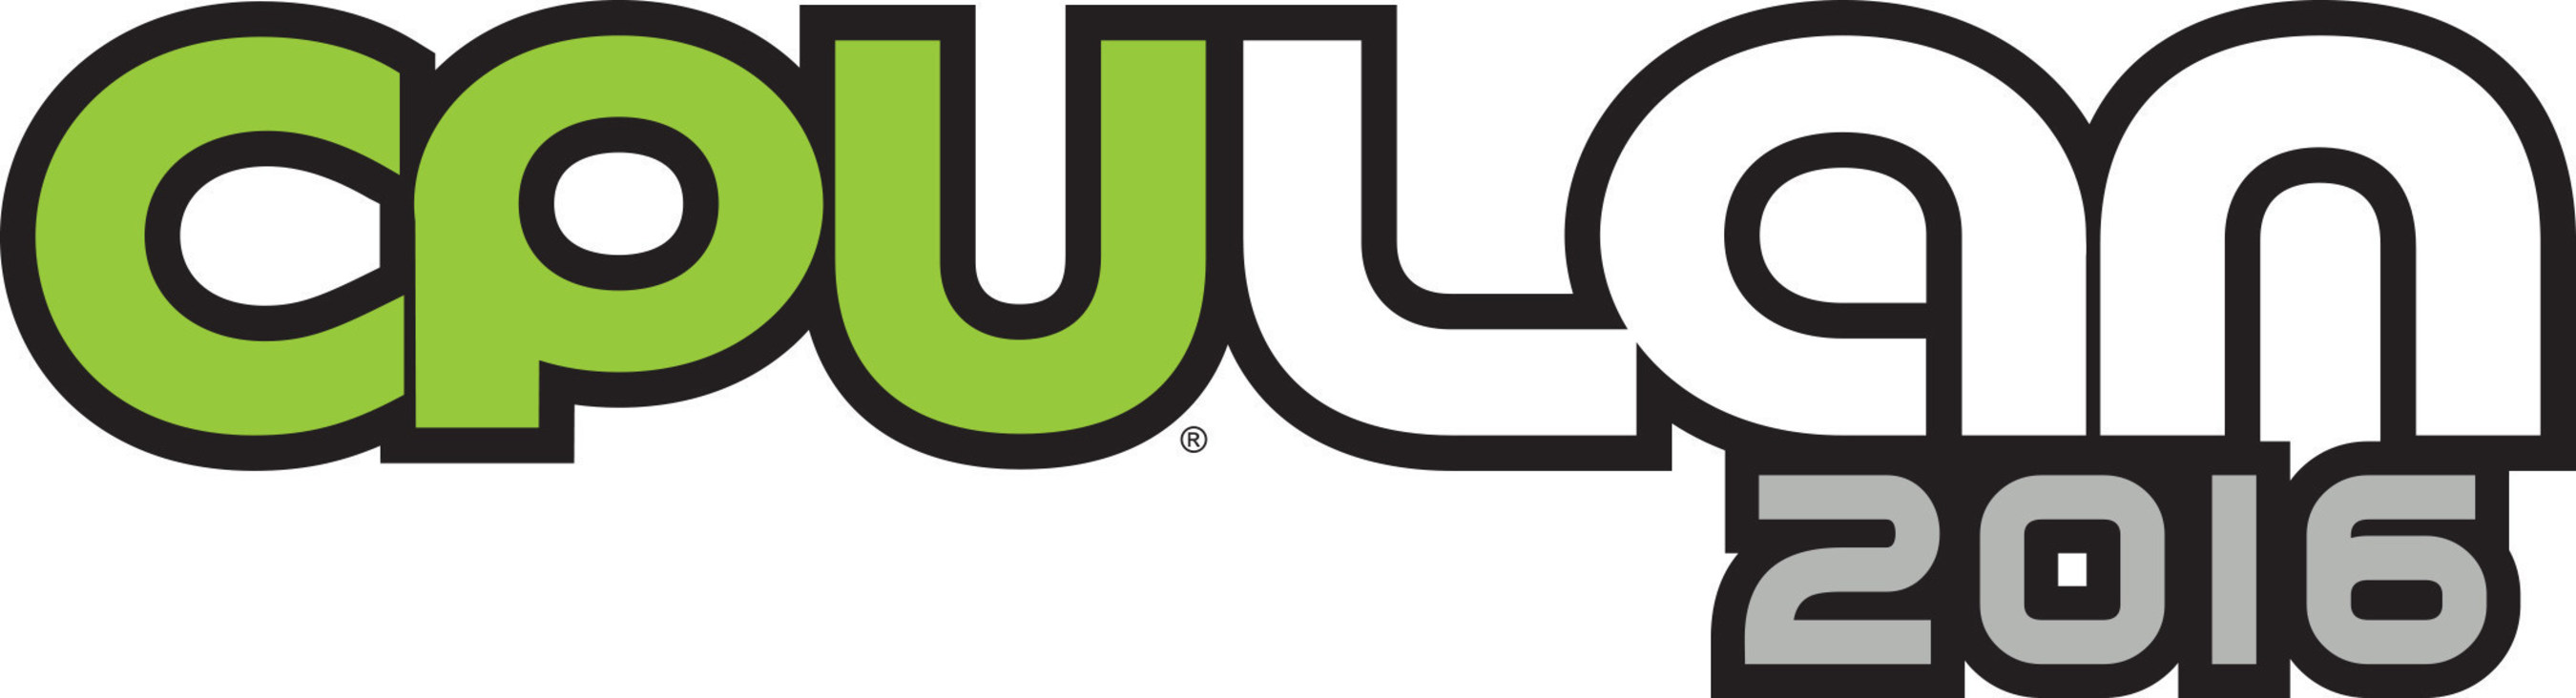 CPU Magazine's CPULAN 2016 Event To Draw Hundreds Of PC Gaming Enthusiasts To Lincoln Sept. 23-24